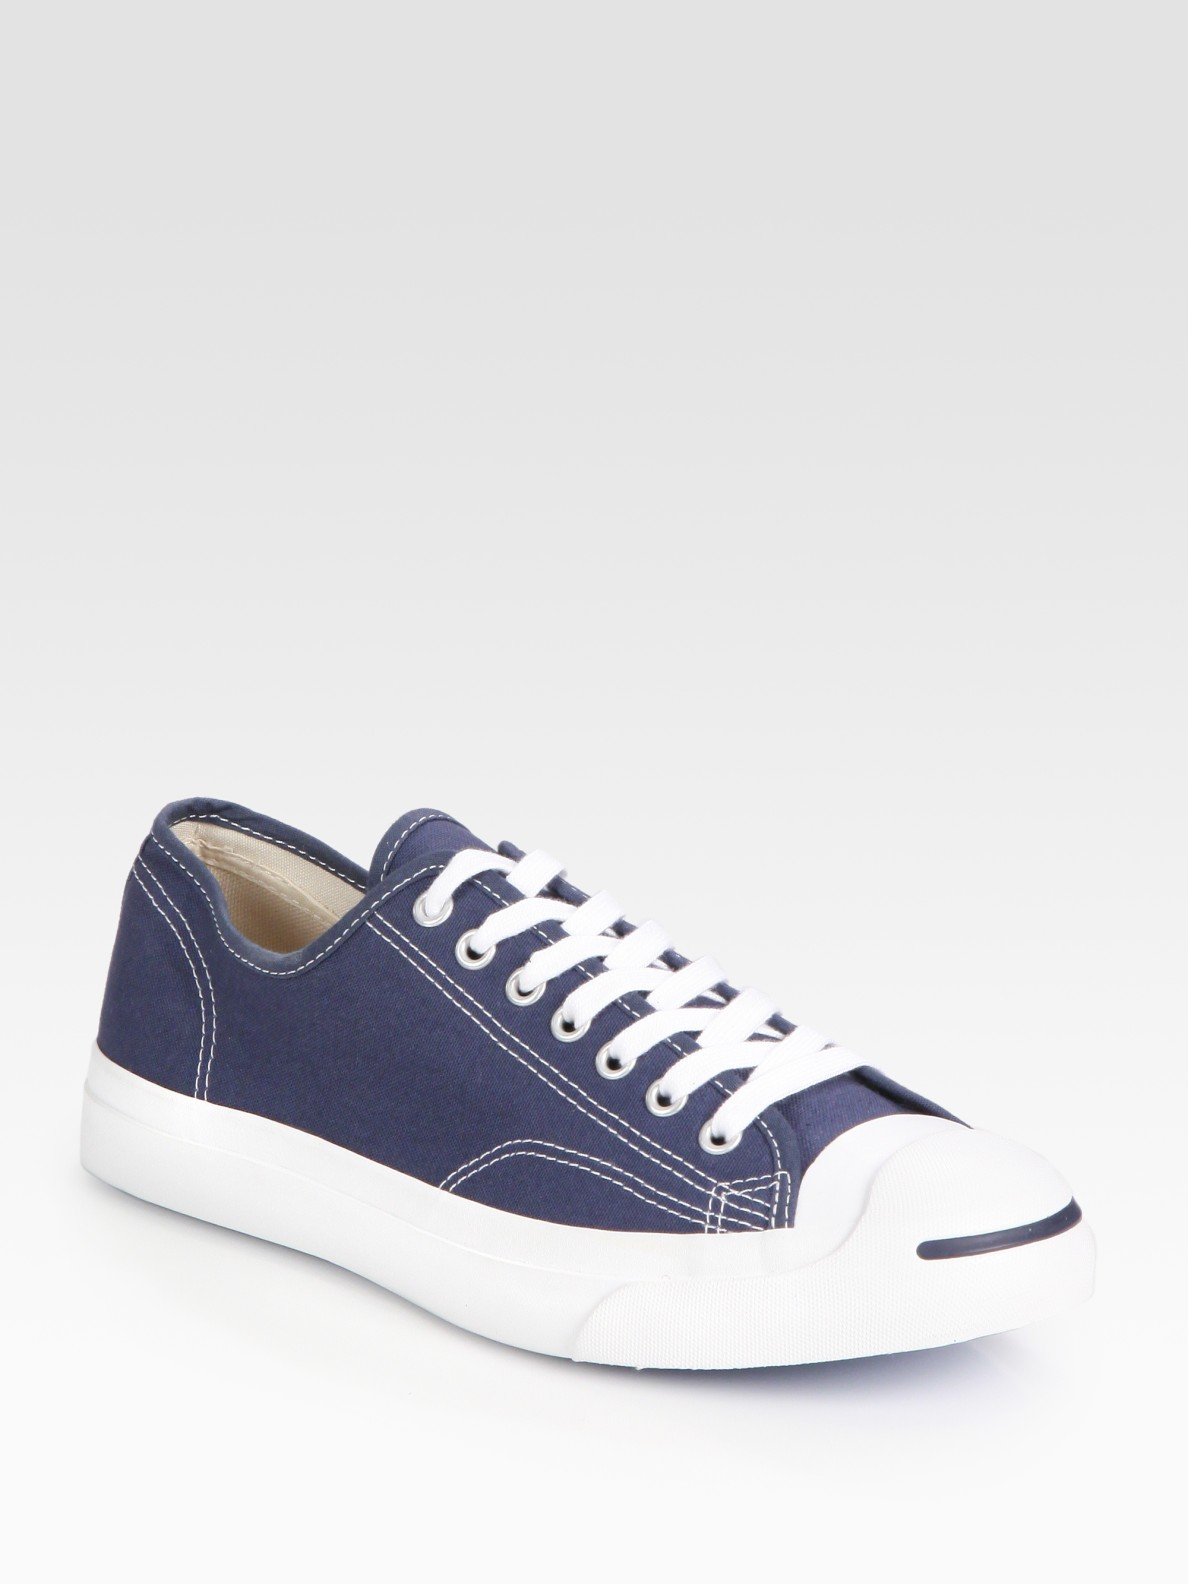 Navy Blue Jack Purcell Shoes